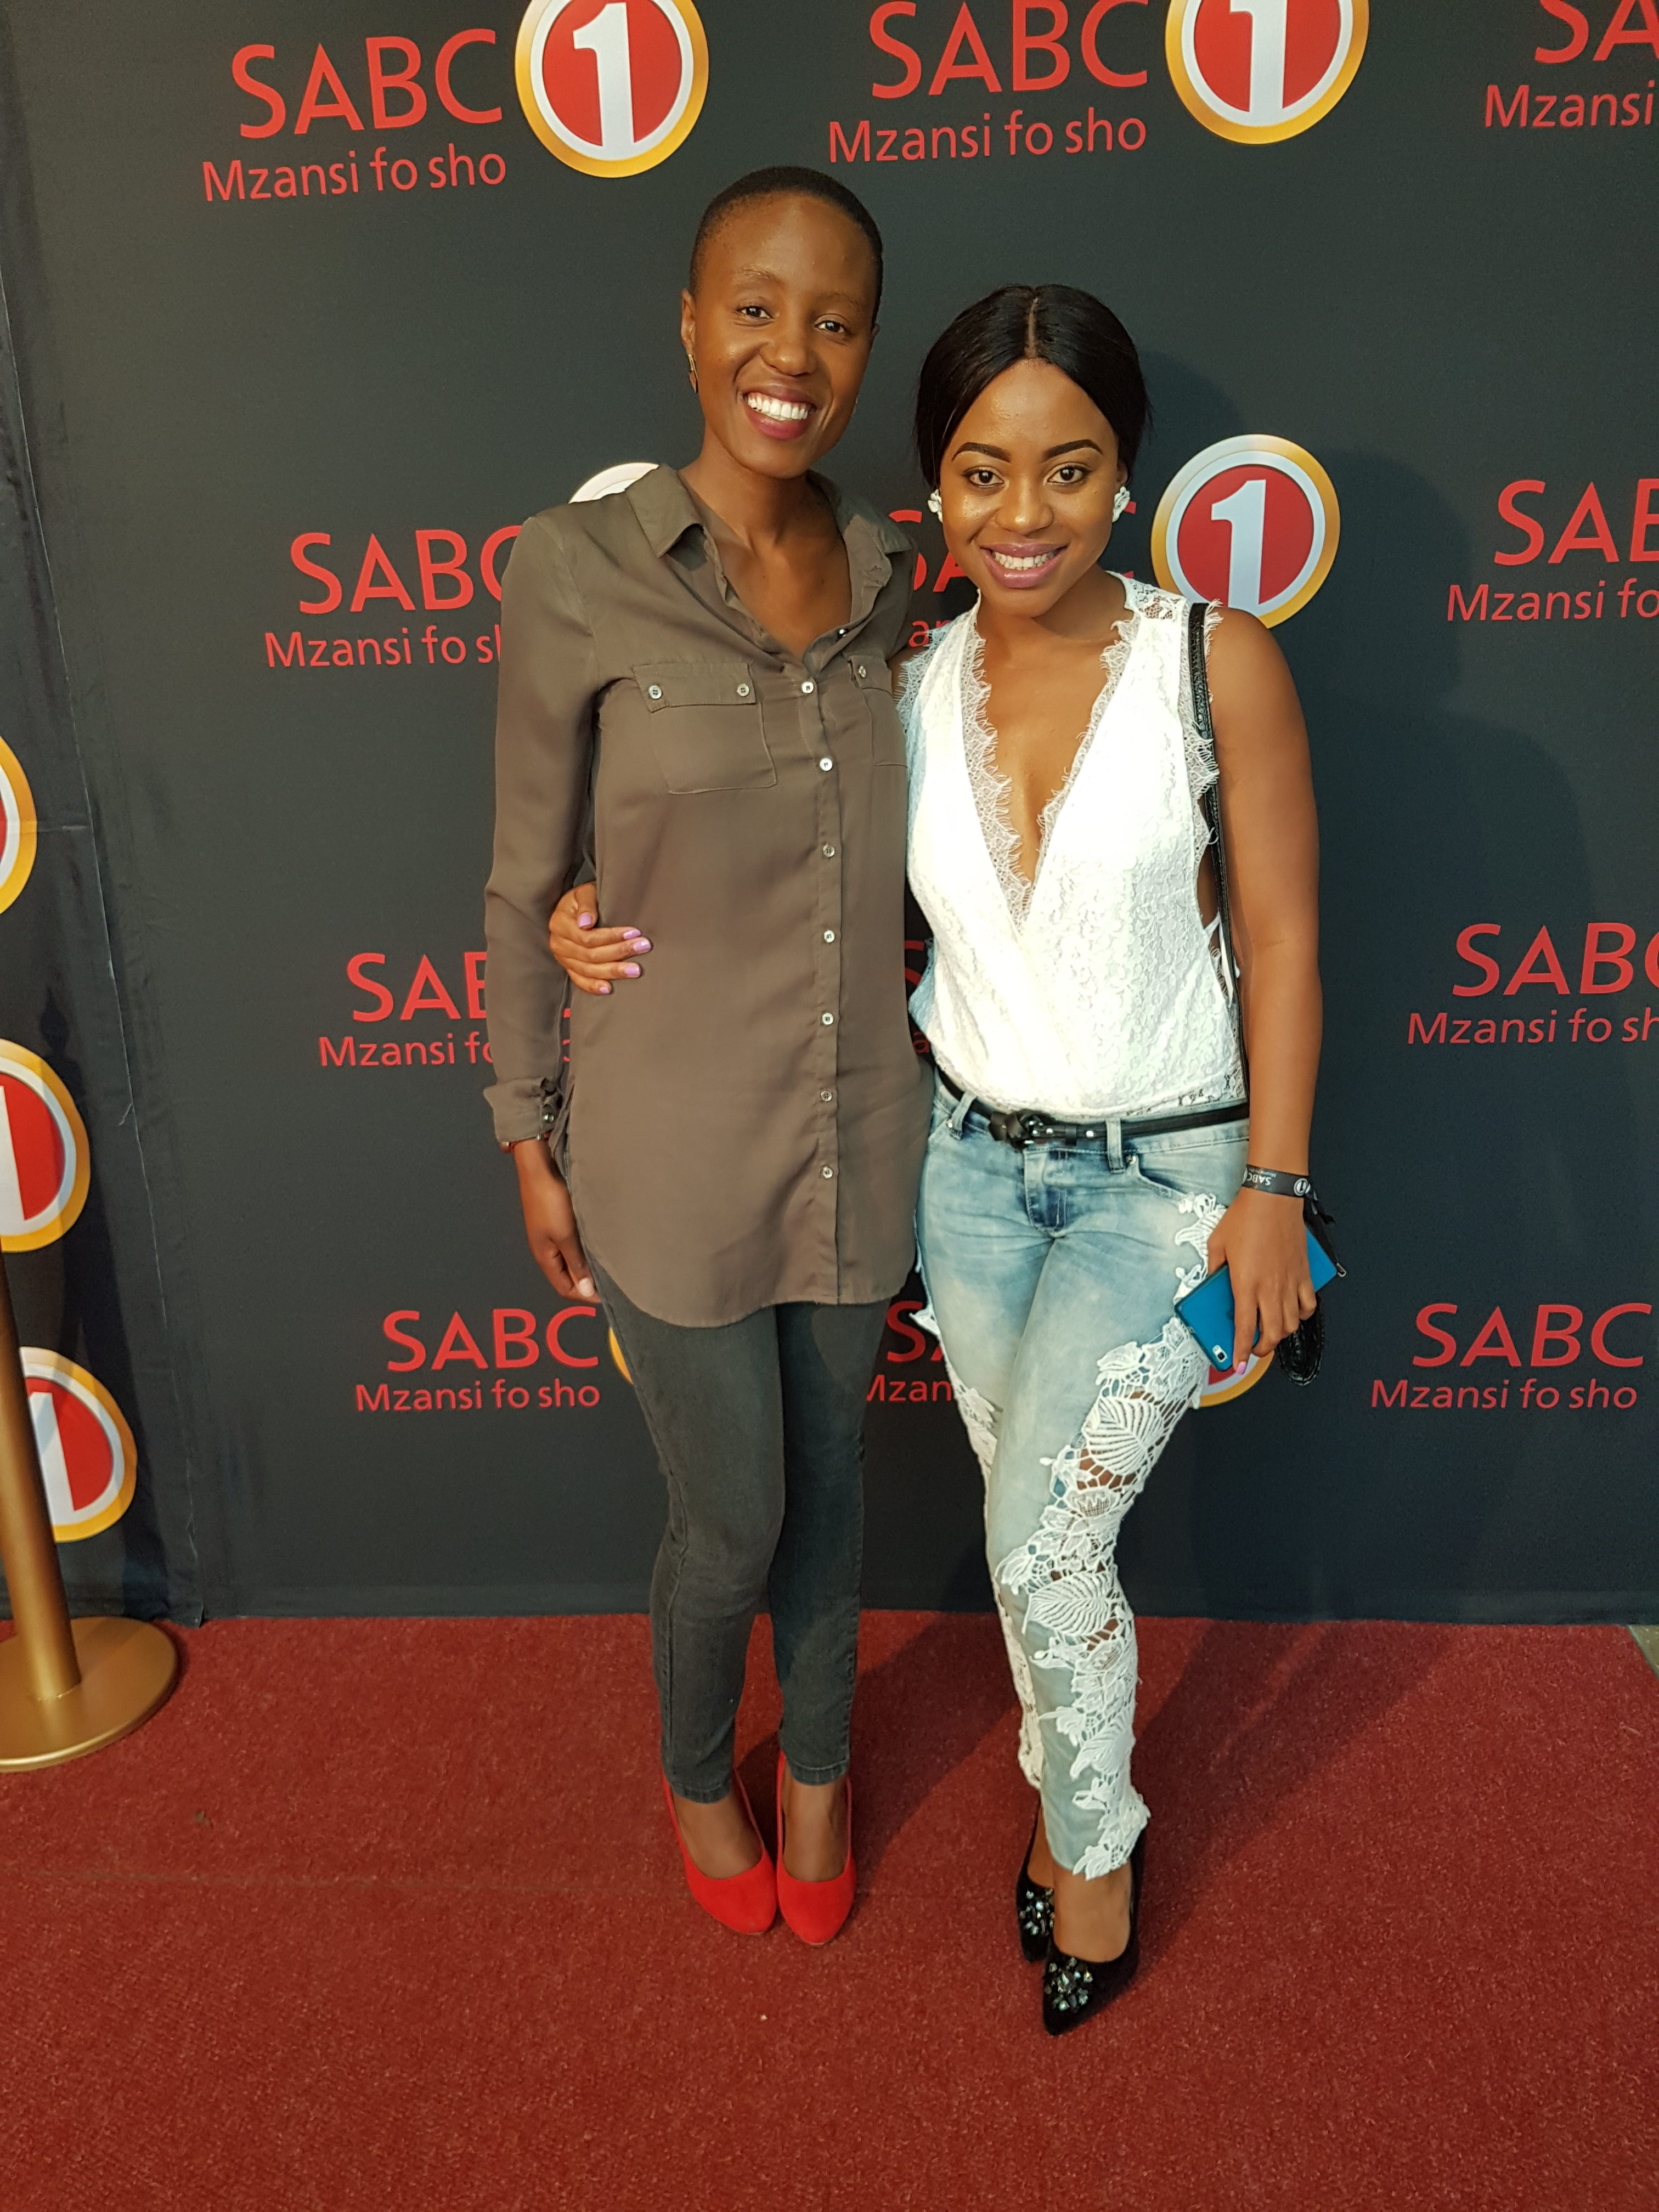 Event Review Celebrities Hang Out At Sabc 1 Media Screening